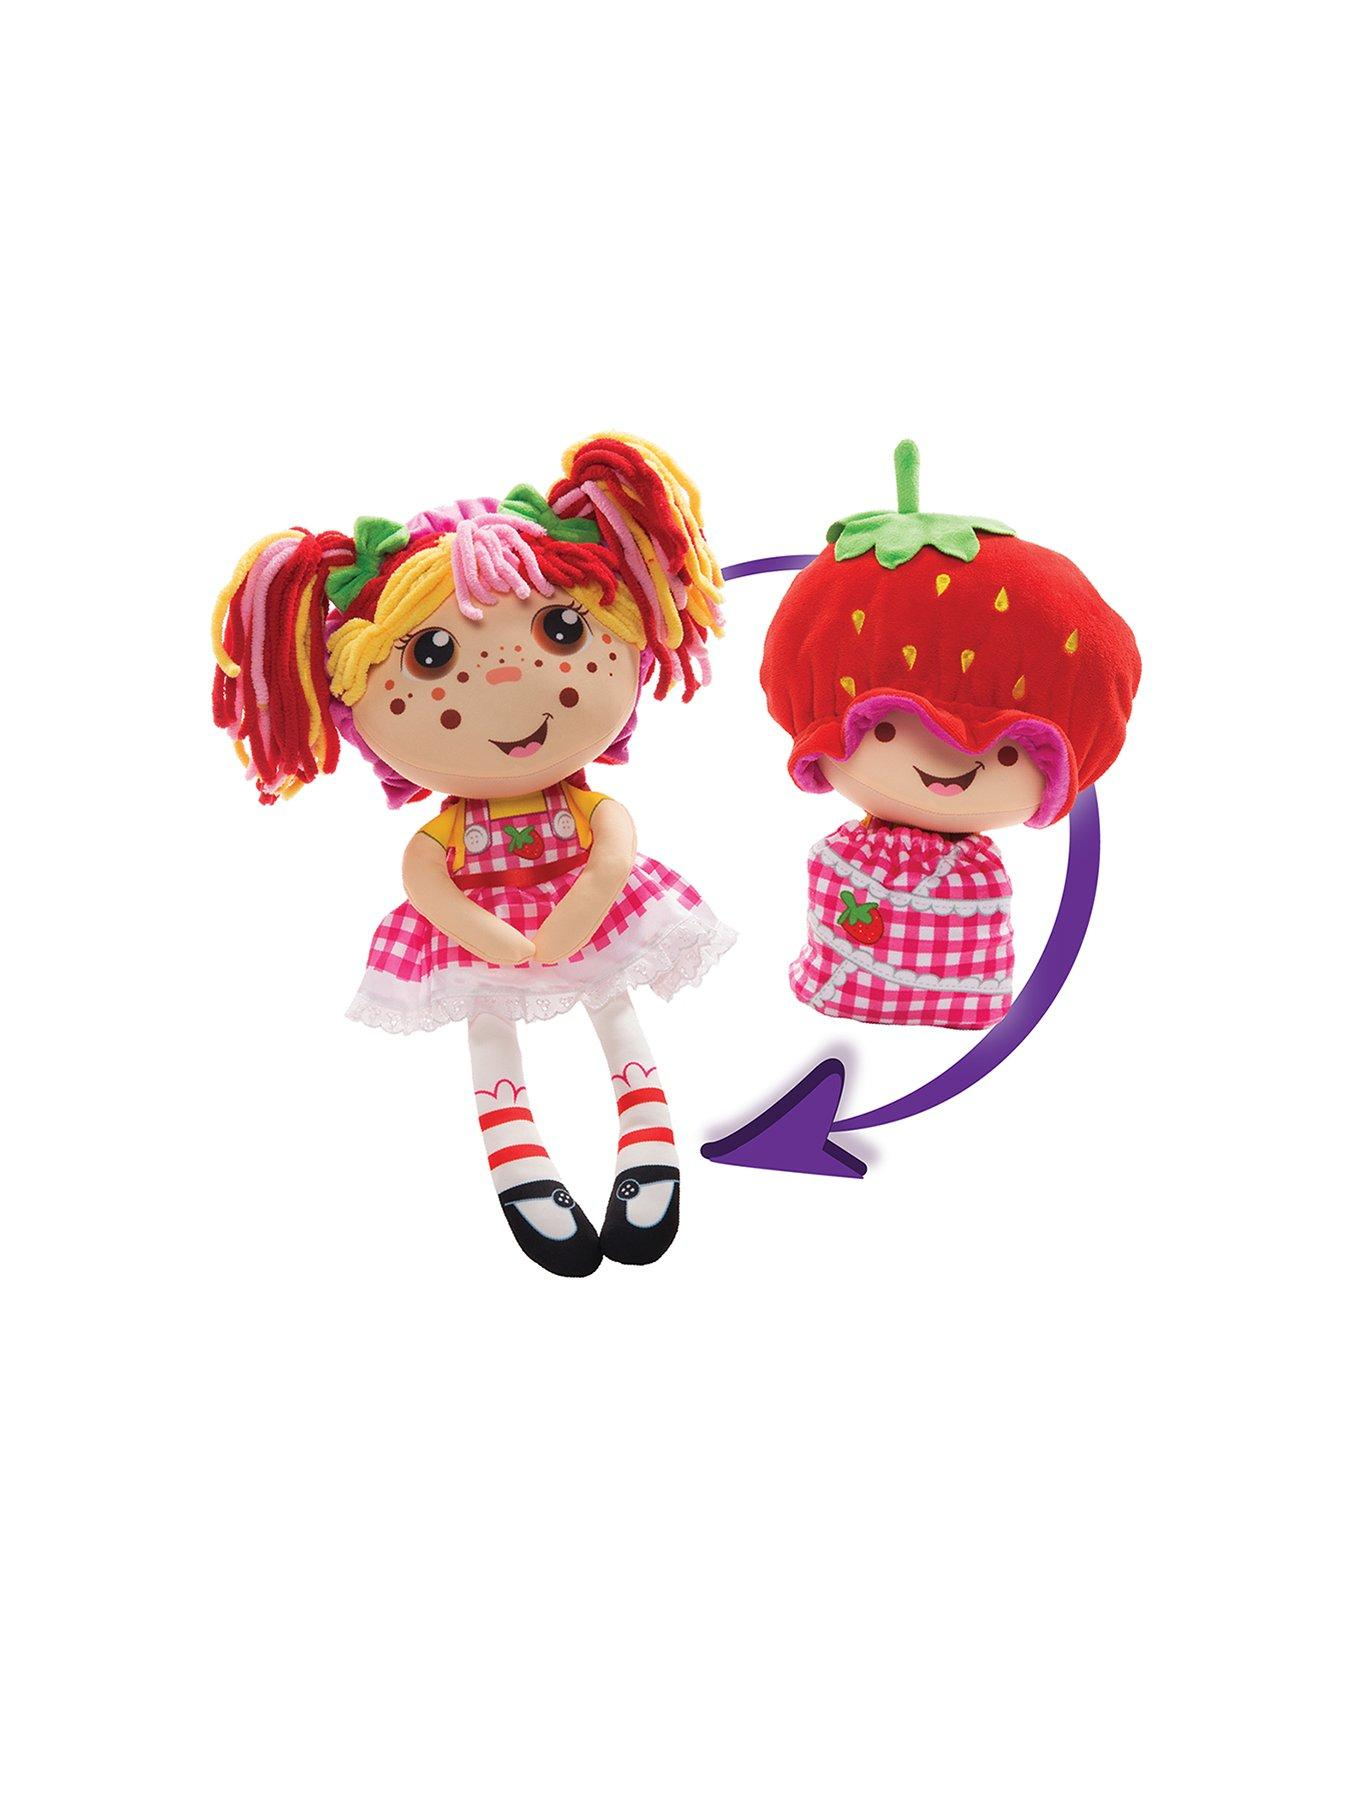 Compare prices for Flipzee Girls 9 inch To 15 inch Zana